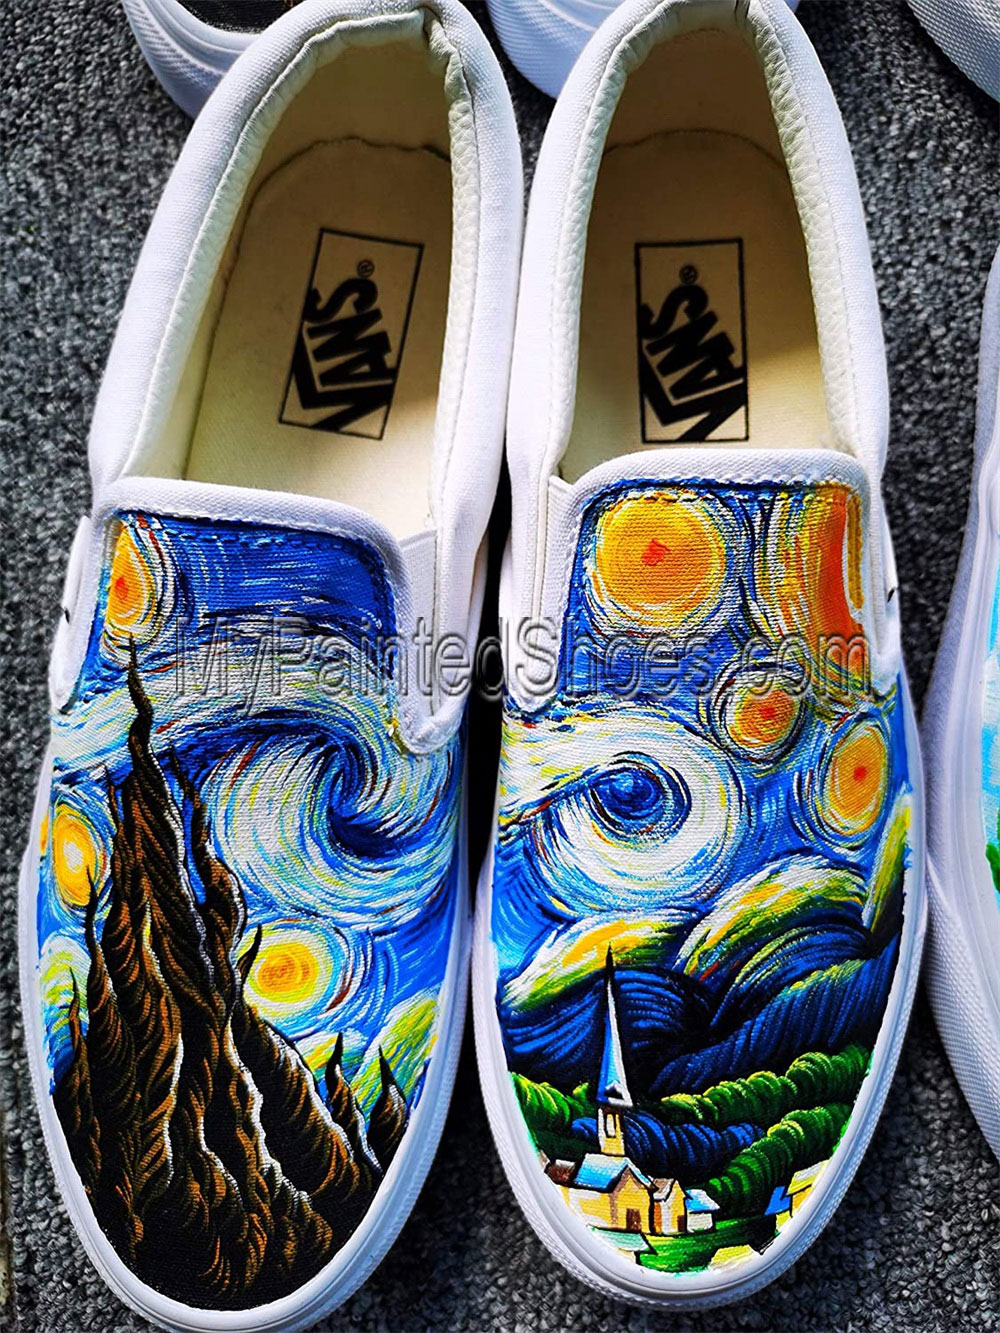 Hand Painted Shoes Vincent van Gogh Shoes The Starry Night Shoes-4